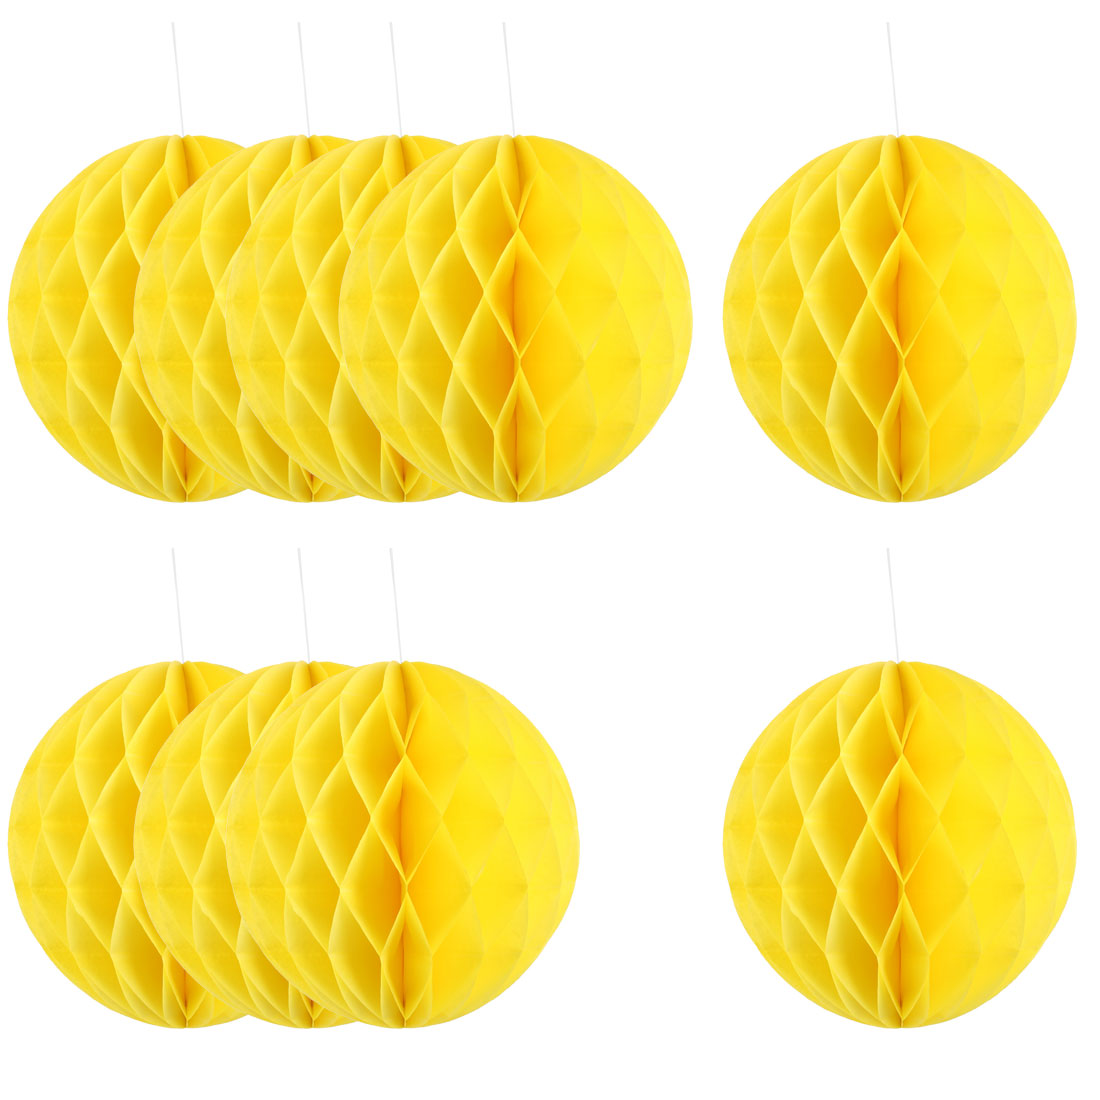 Household Party Paper Wall Window Door DIY Decoration Honeycomb Ball Yellow 12 Inch Dia 10 Pcs